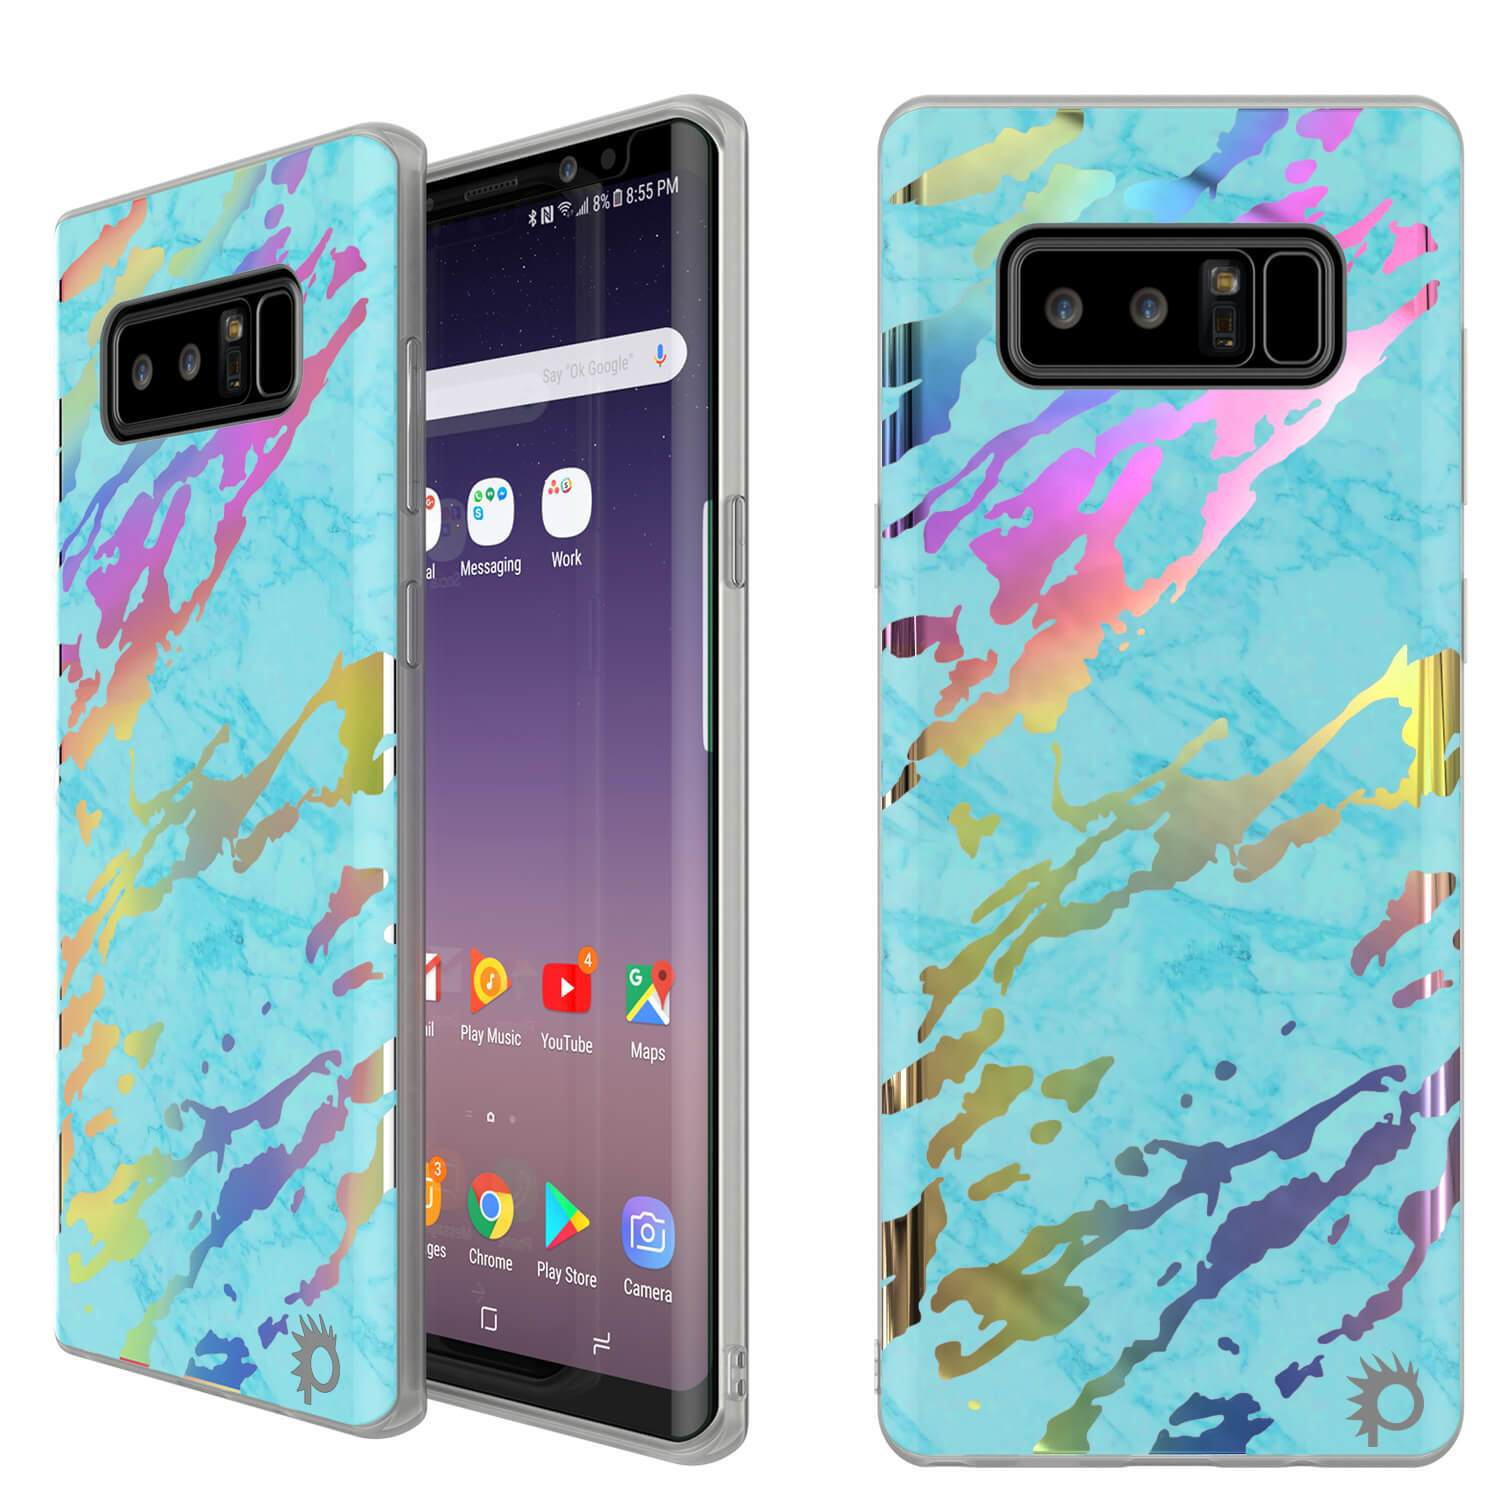 Punkcase Galaxy Note 8 Marble Case, Protective Full Body Cover W/PunkShield Screen Protector (Teal Onyx)